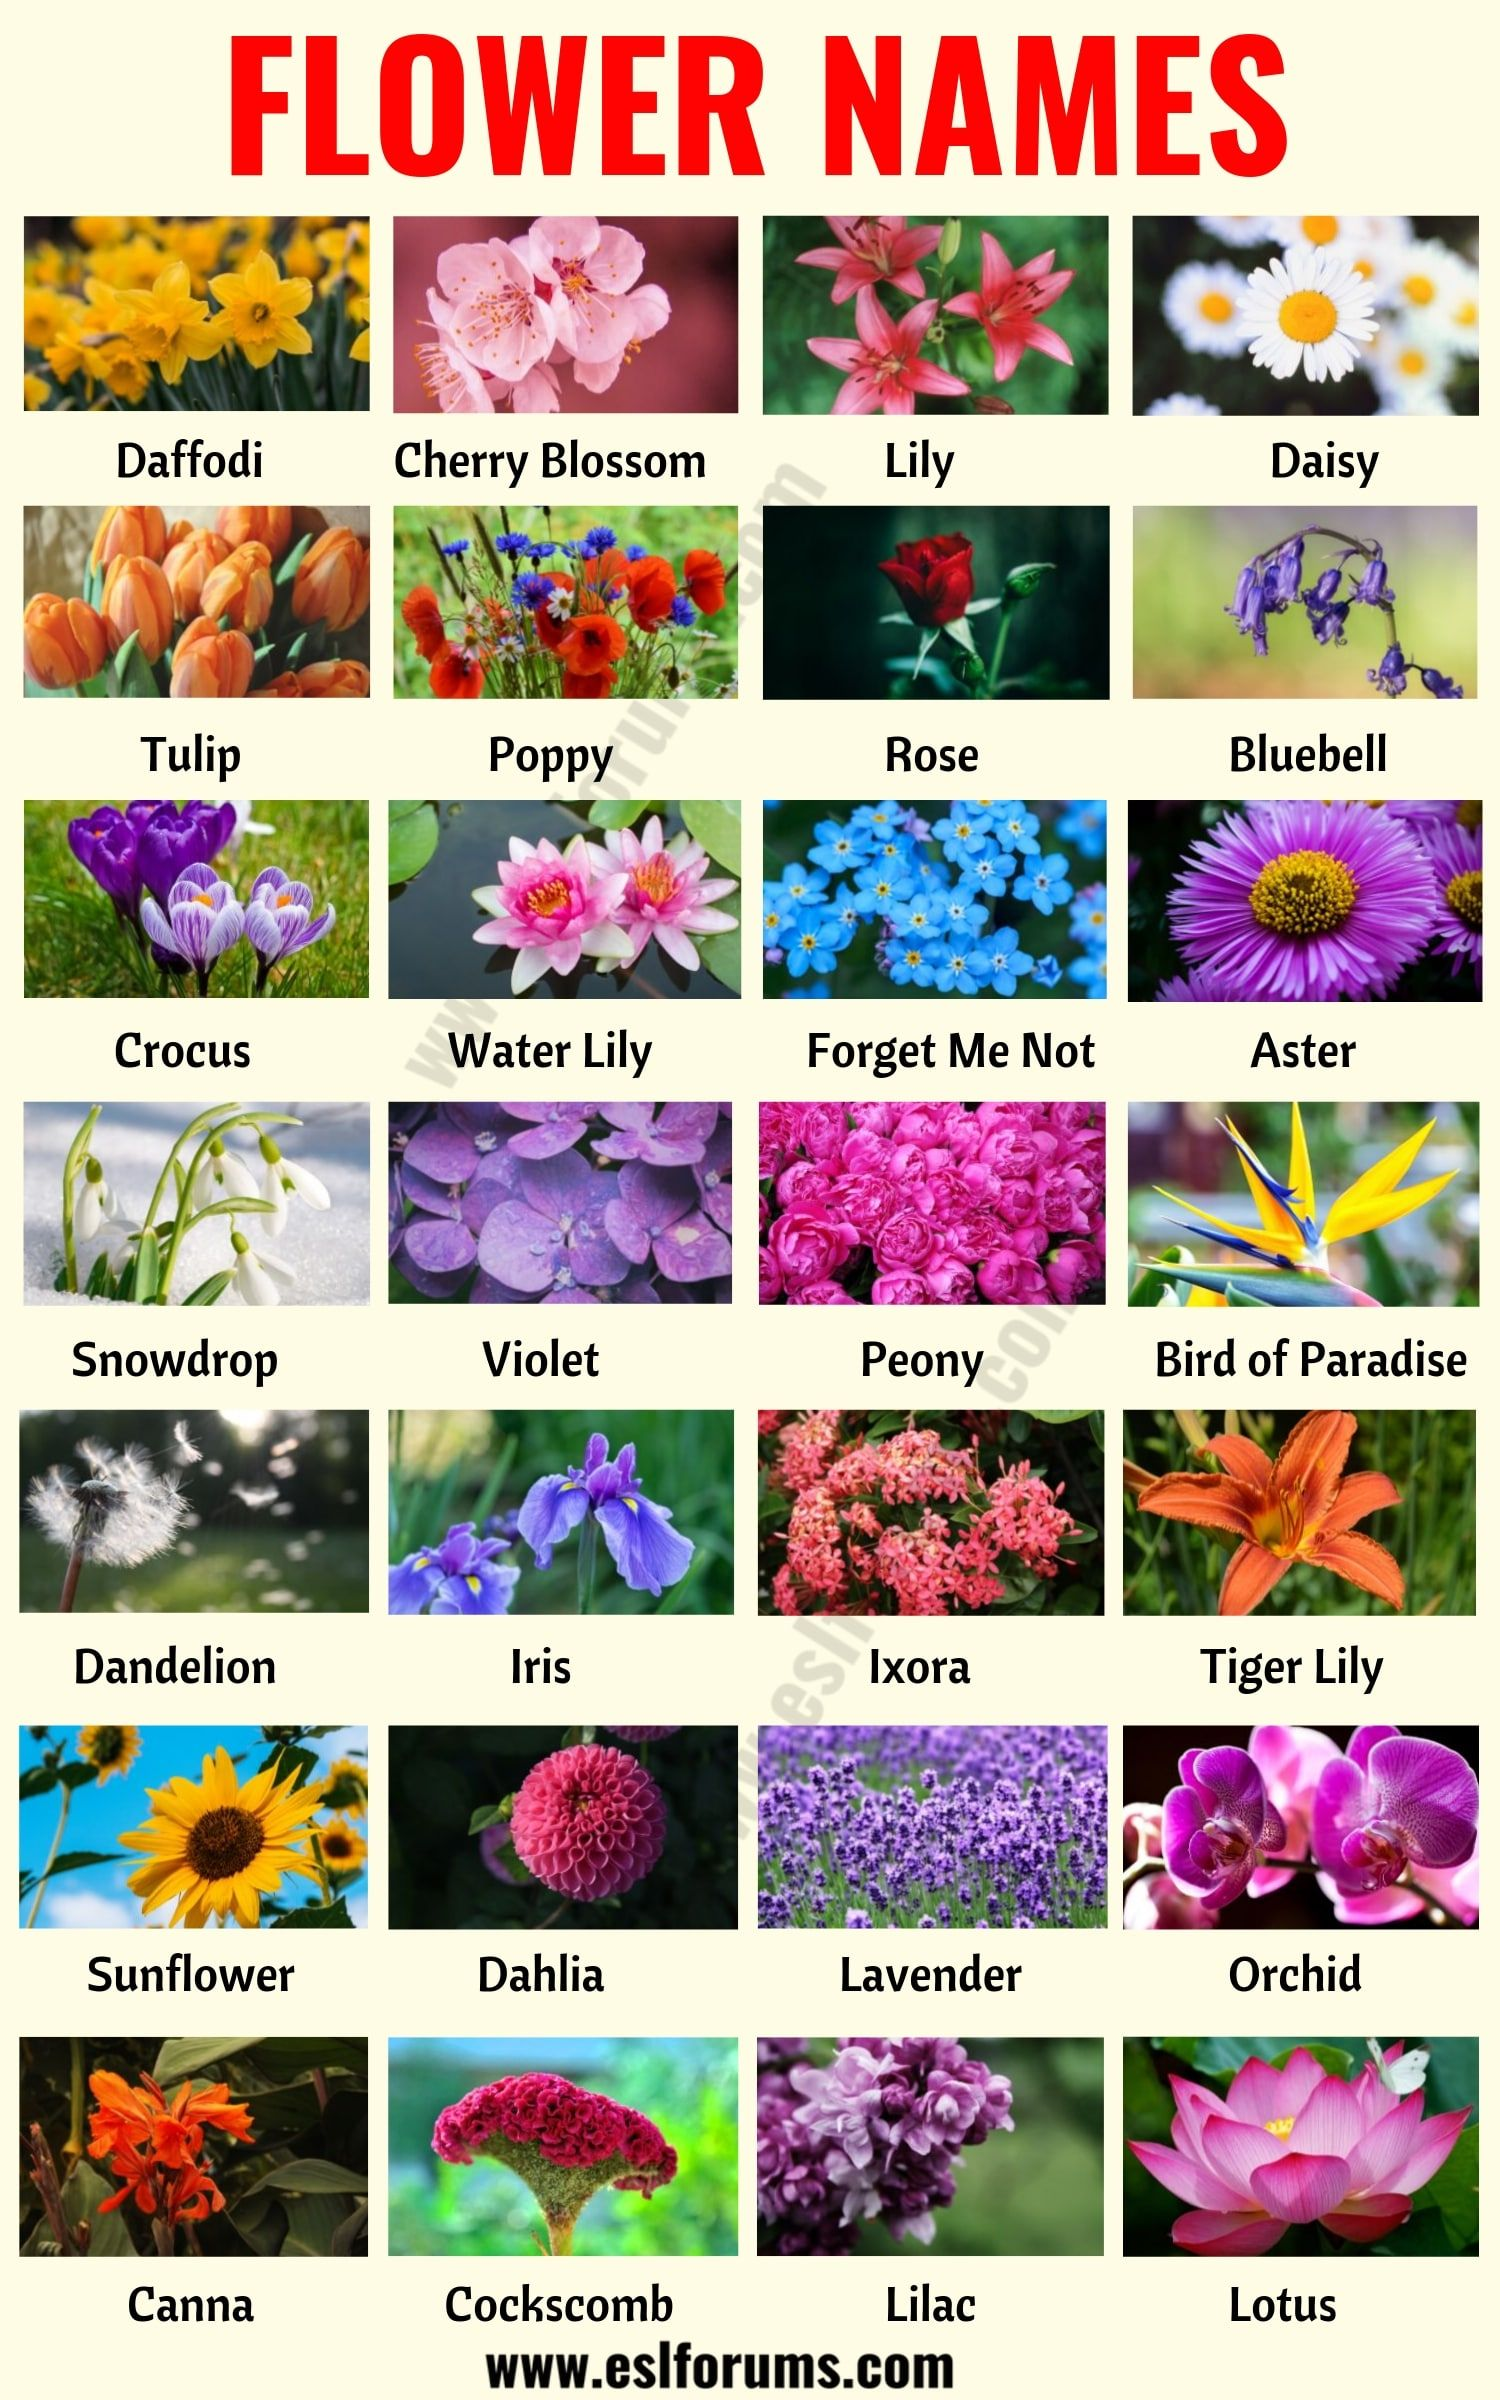 Flower Names List Of 25 Popular Types Of Flowers With The Pictures Esl Forums Infographic Flower Names Types Of Flowers Flowers